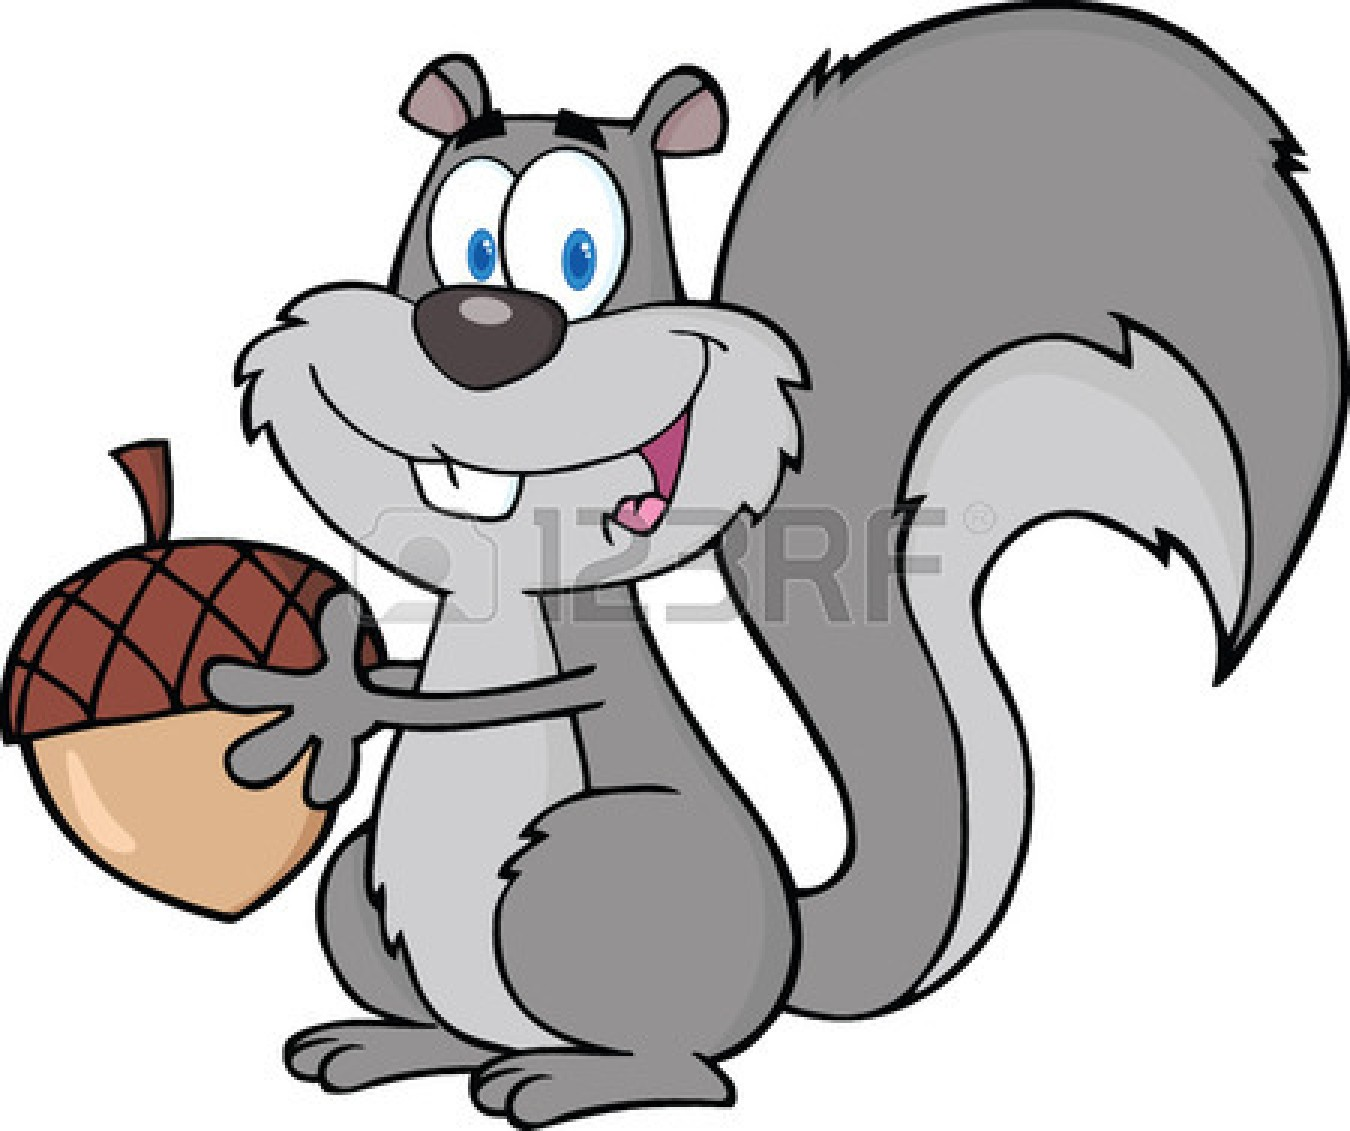 Gray Squirrel clipart Images Panda Clipart squirrel%20running%20clipart Squirrel